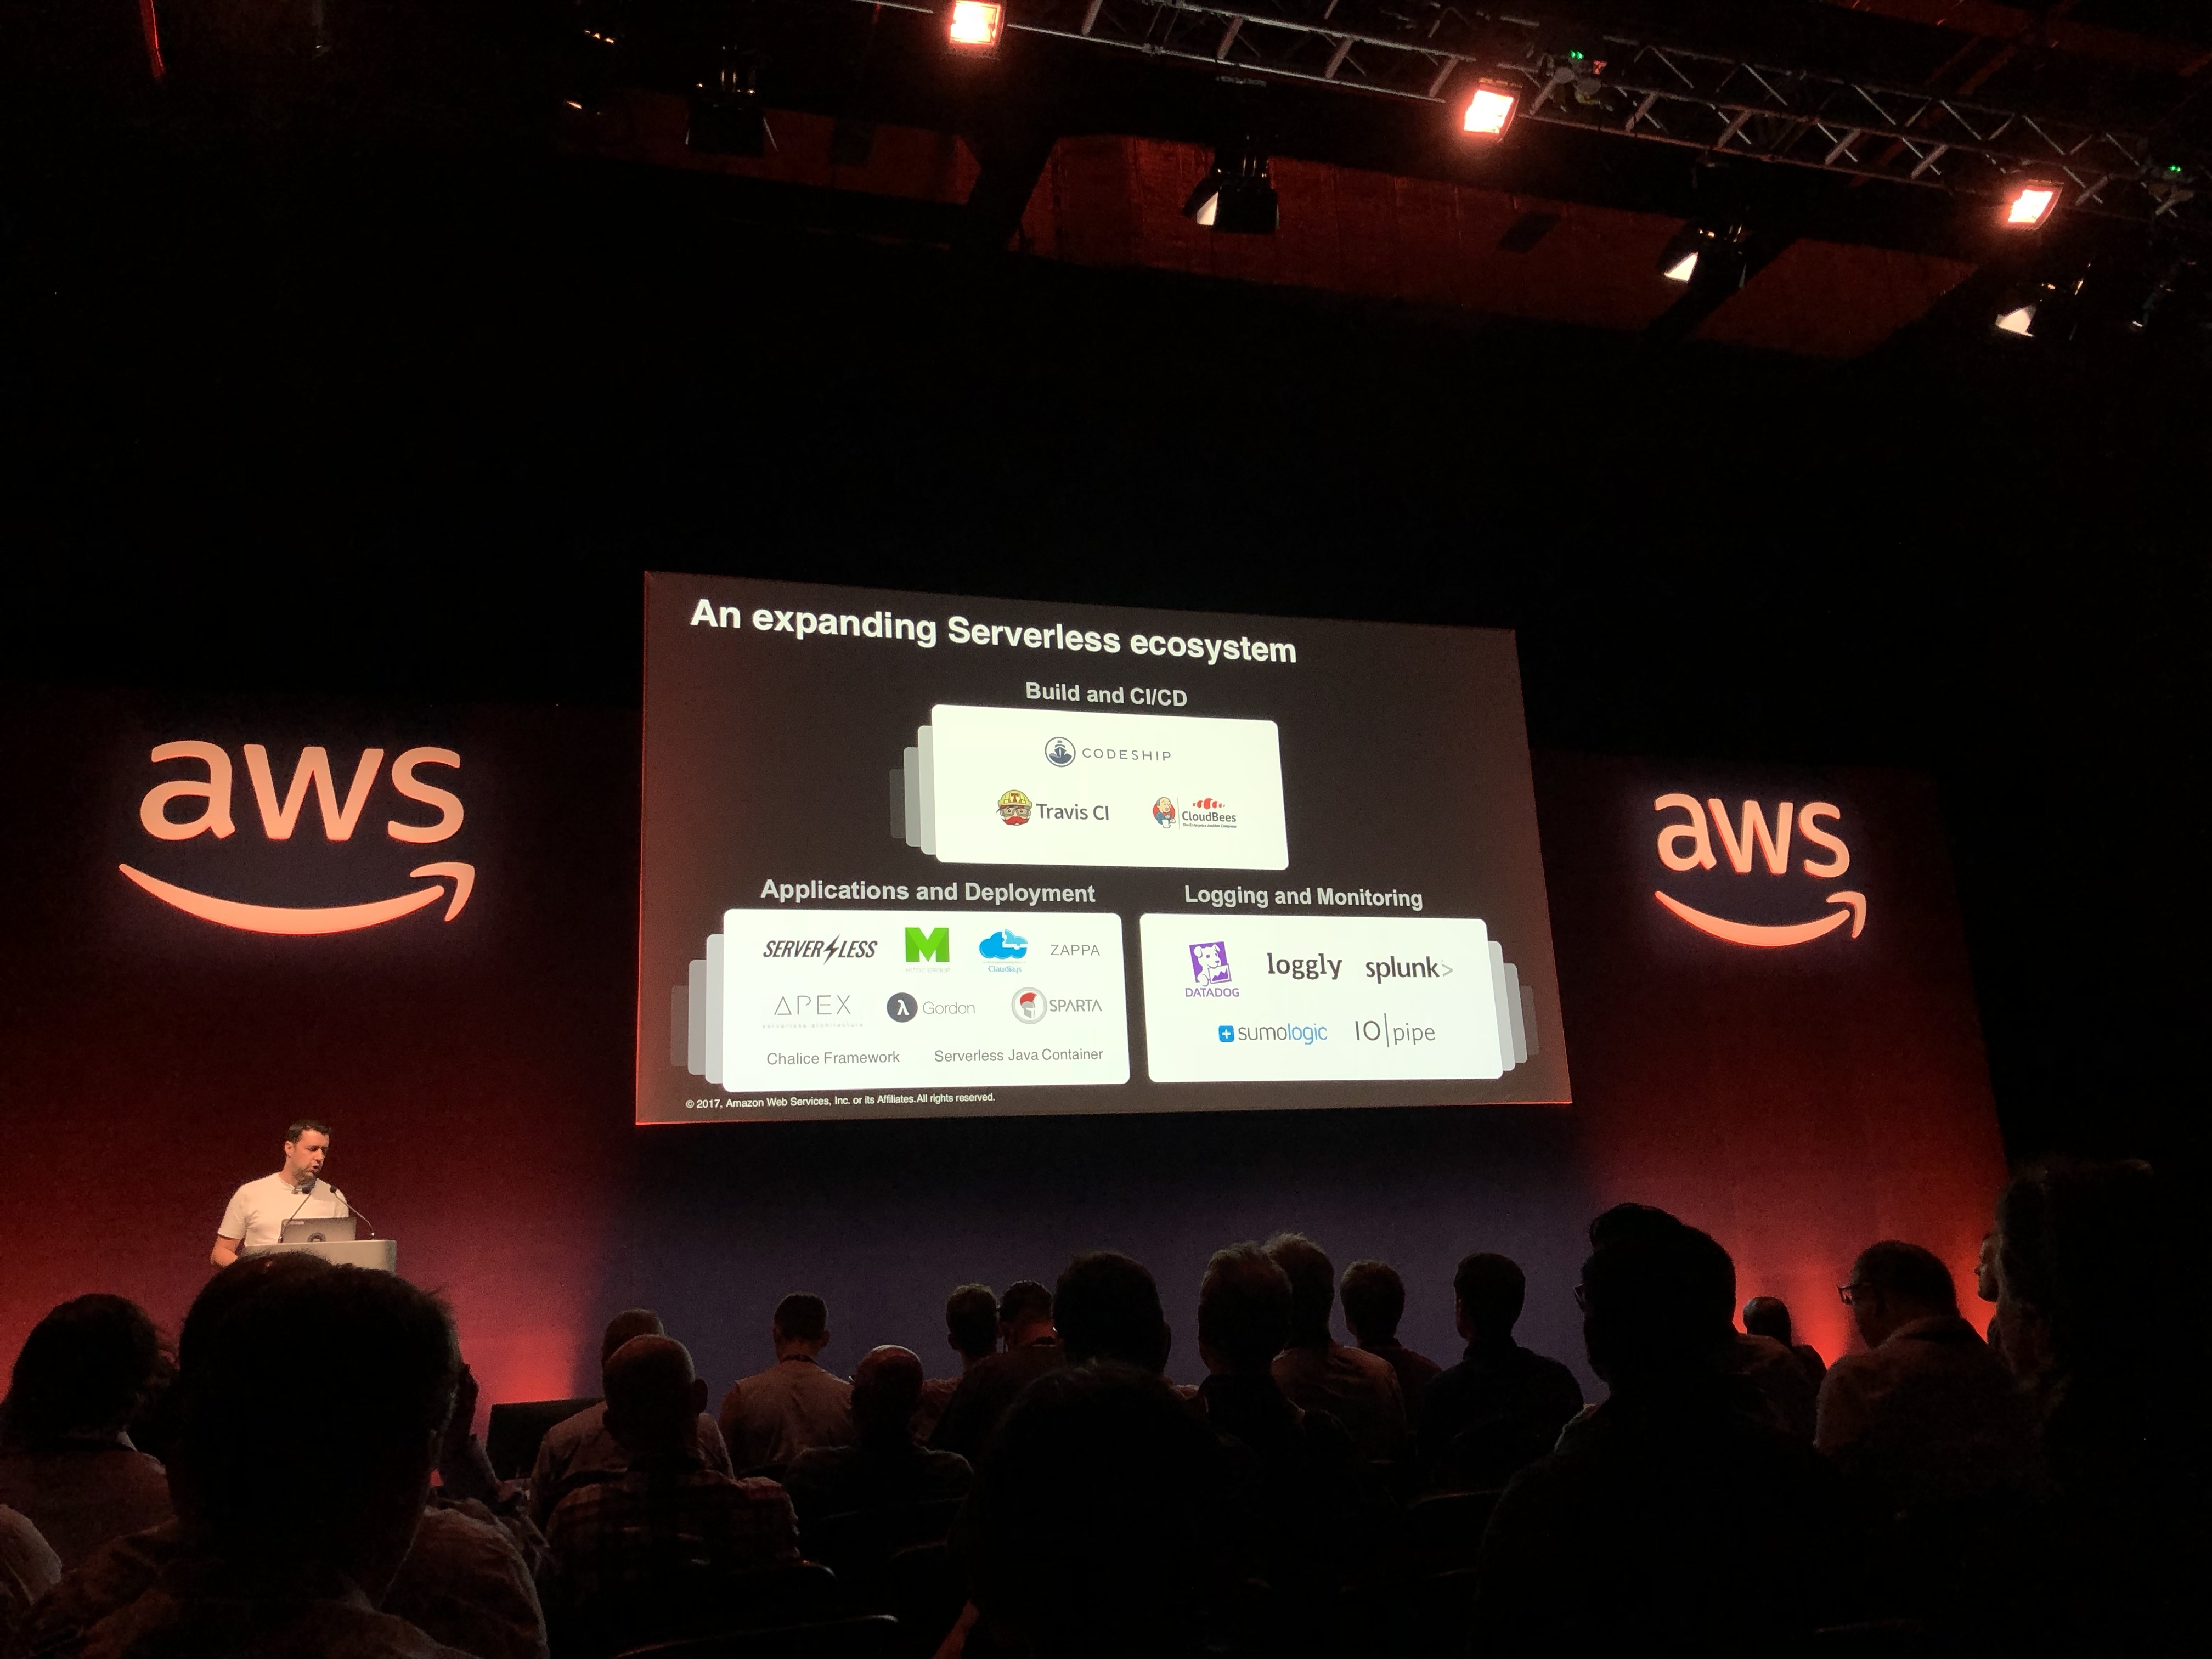 AWS stage